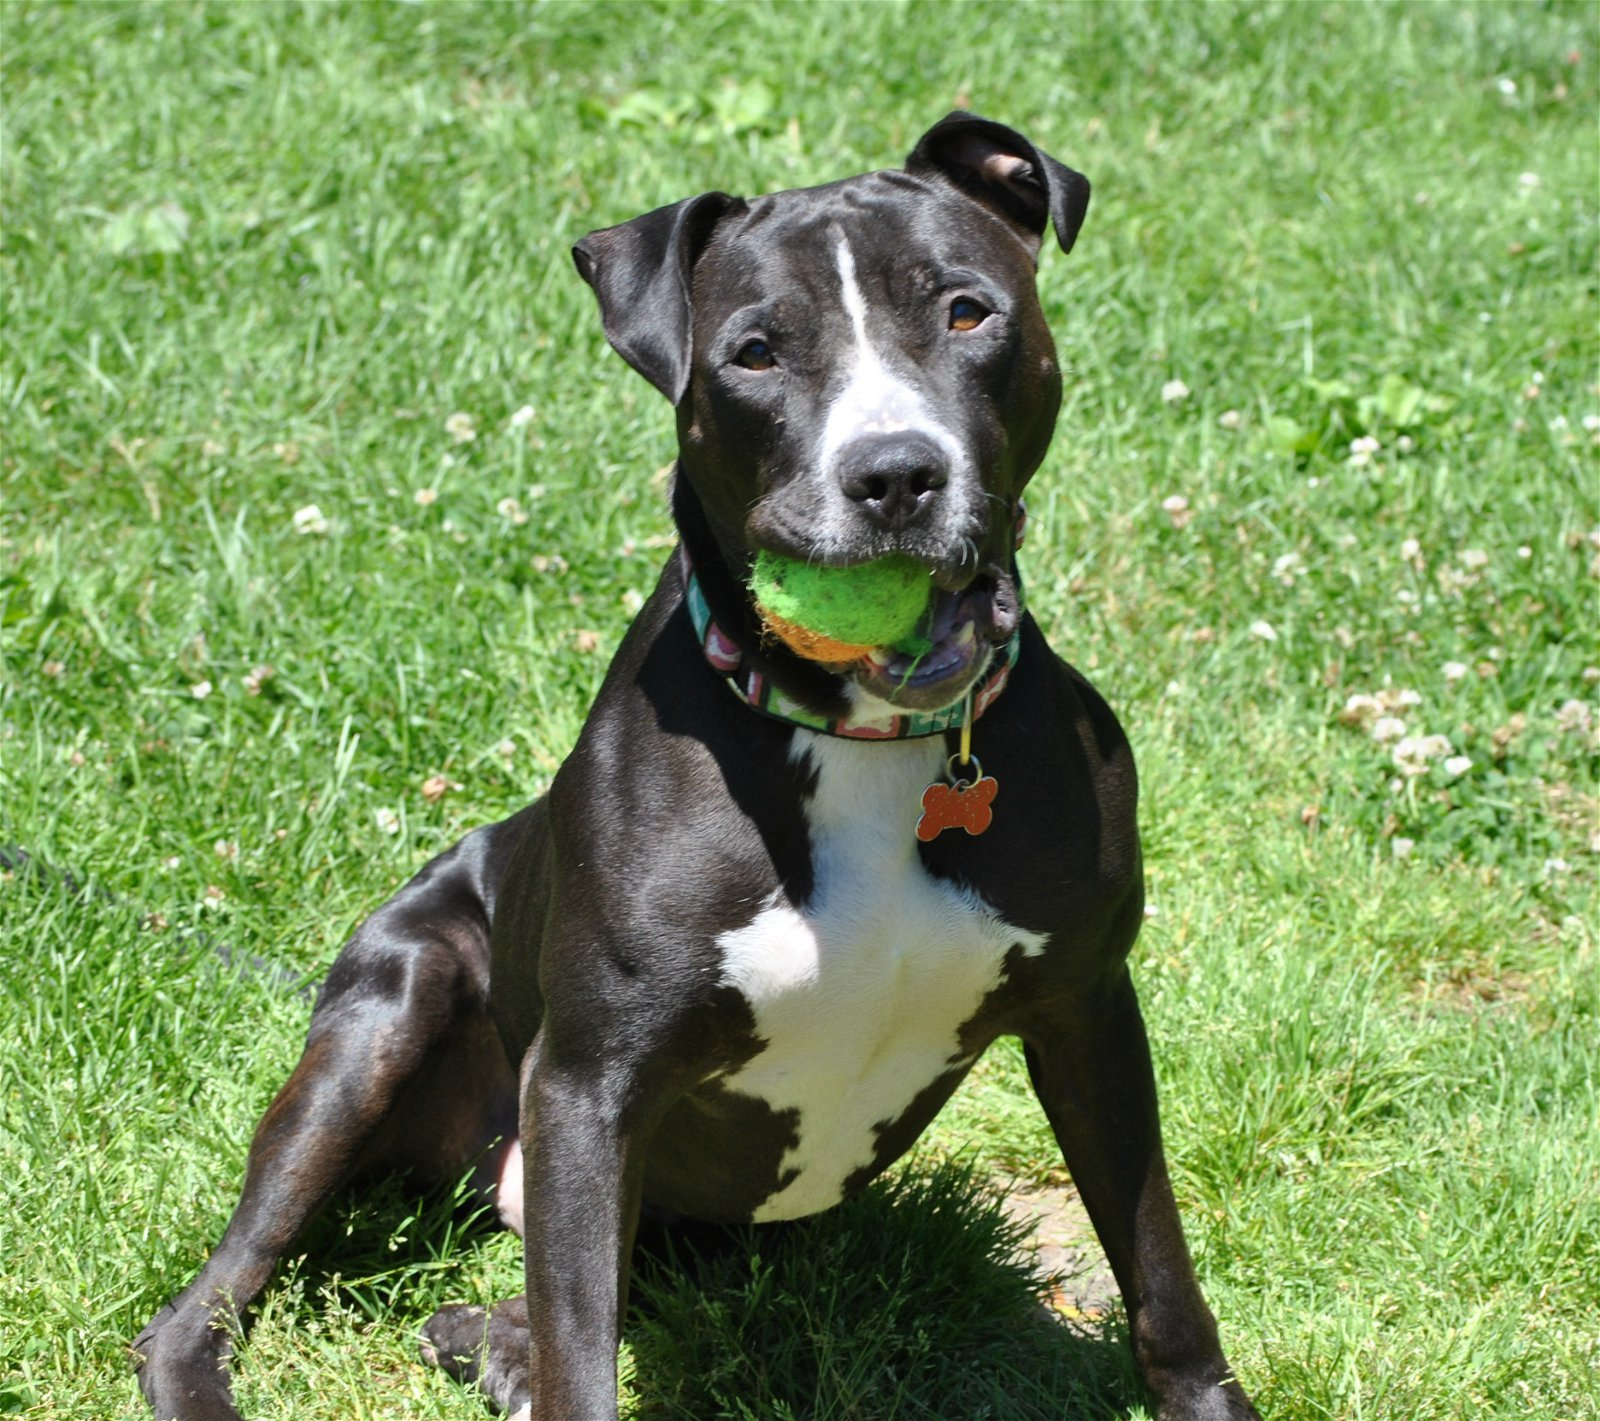 Dog For Adoption Freddie A Boxer Staffordshire Bull Terrier Mix In Spring Lake Nj Petfinder